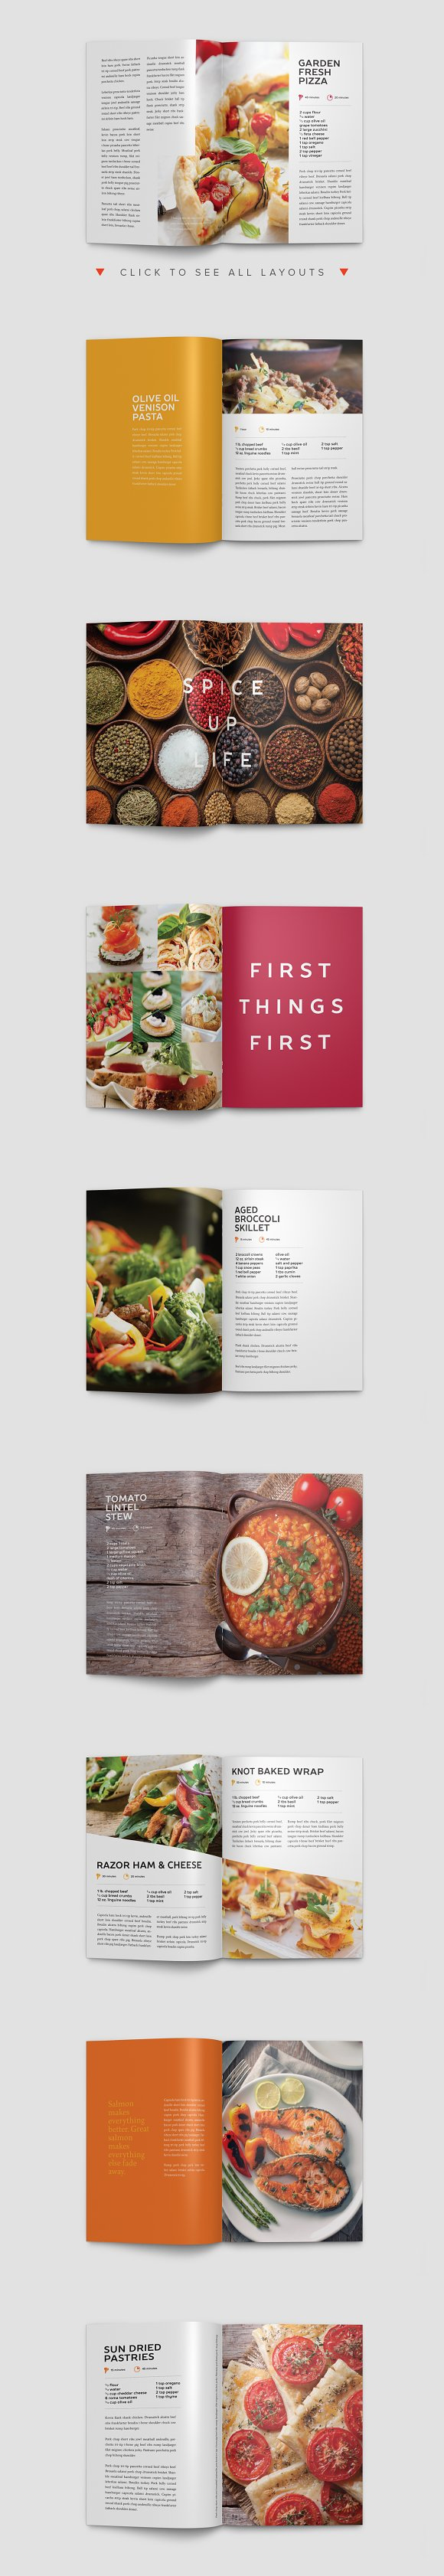 Modern Cookbook InDesign Template Brochure Templates Creative Market - Adobe indesign cookbook template